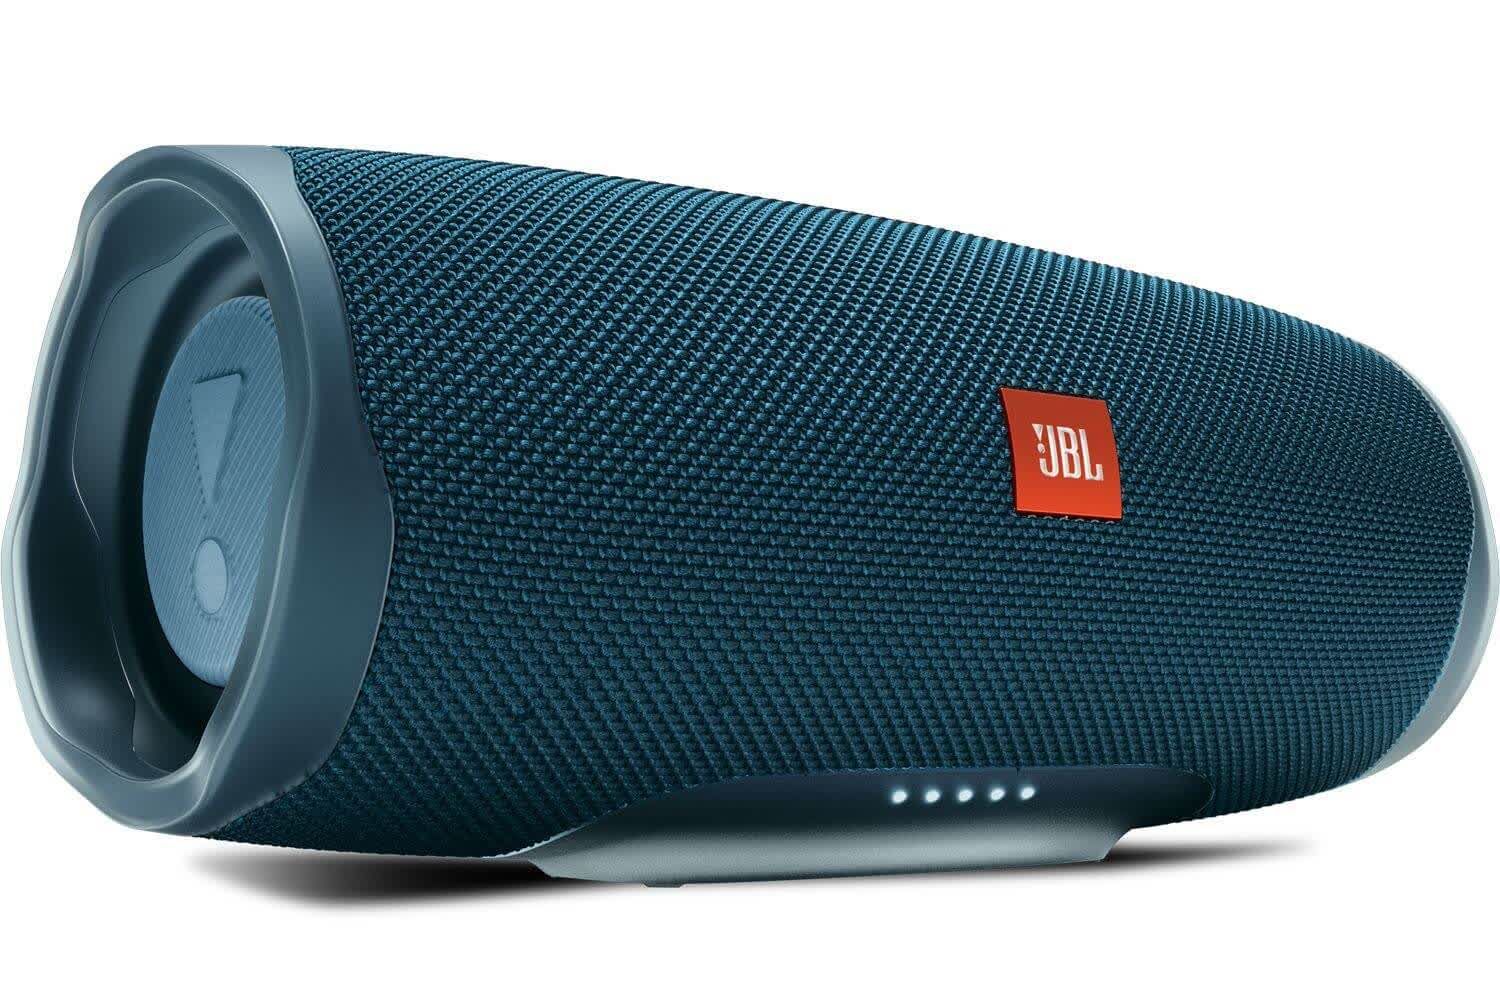 jbl charge 2 driver windows 7 download